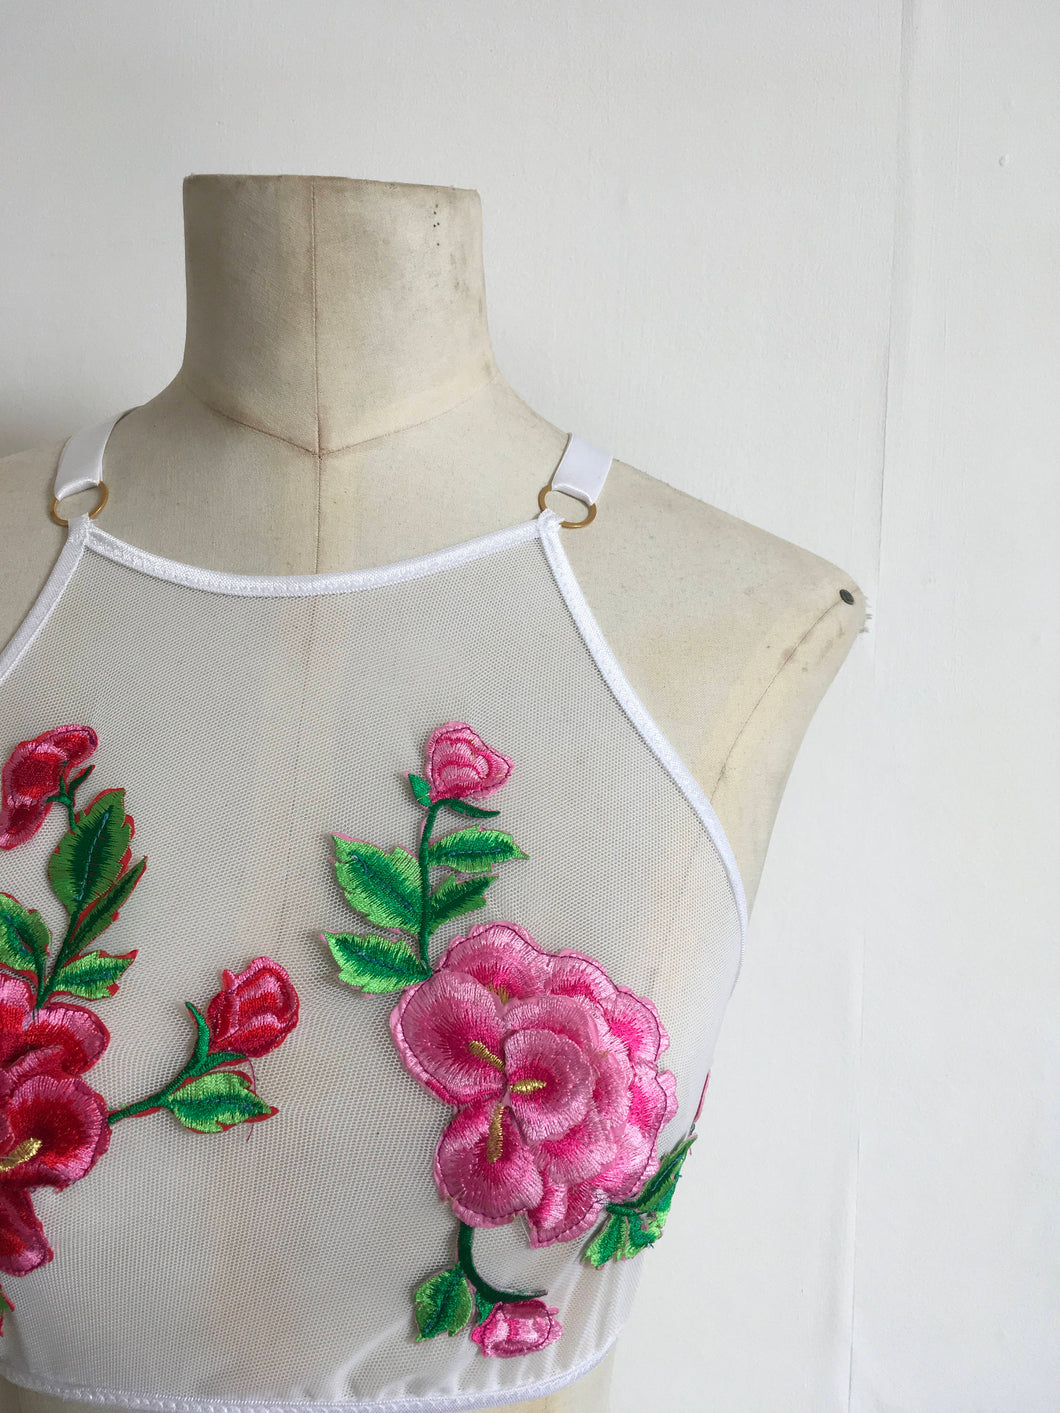 Colourful floral applique embroidery Lace and Mesh Crop top / Bralette, festival fun, sheer cami, lingerie top.